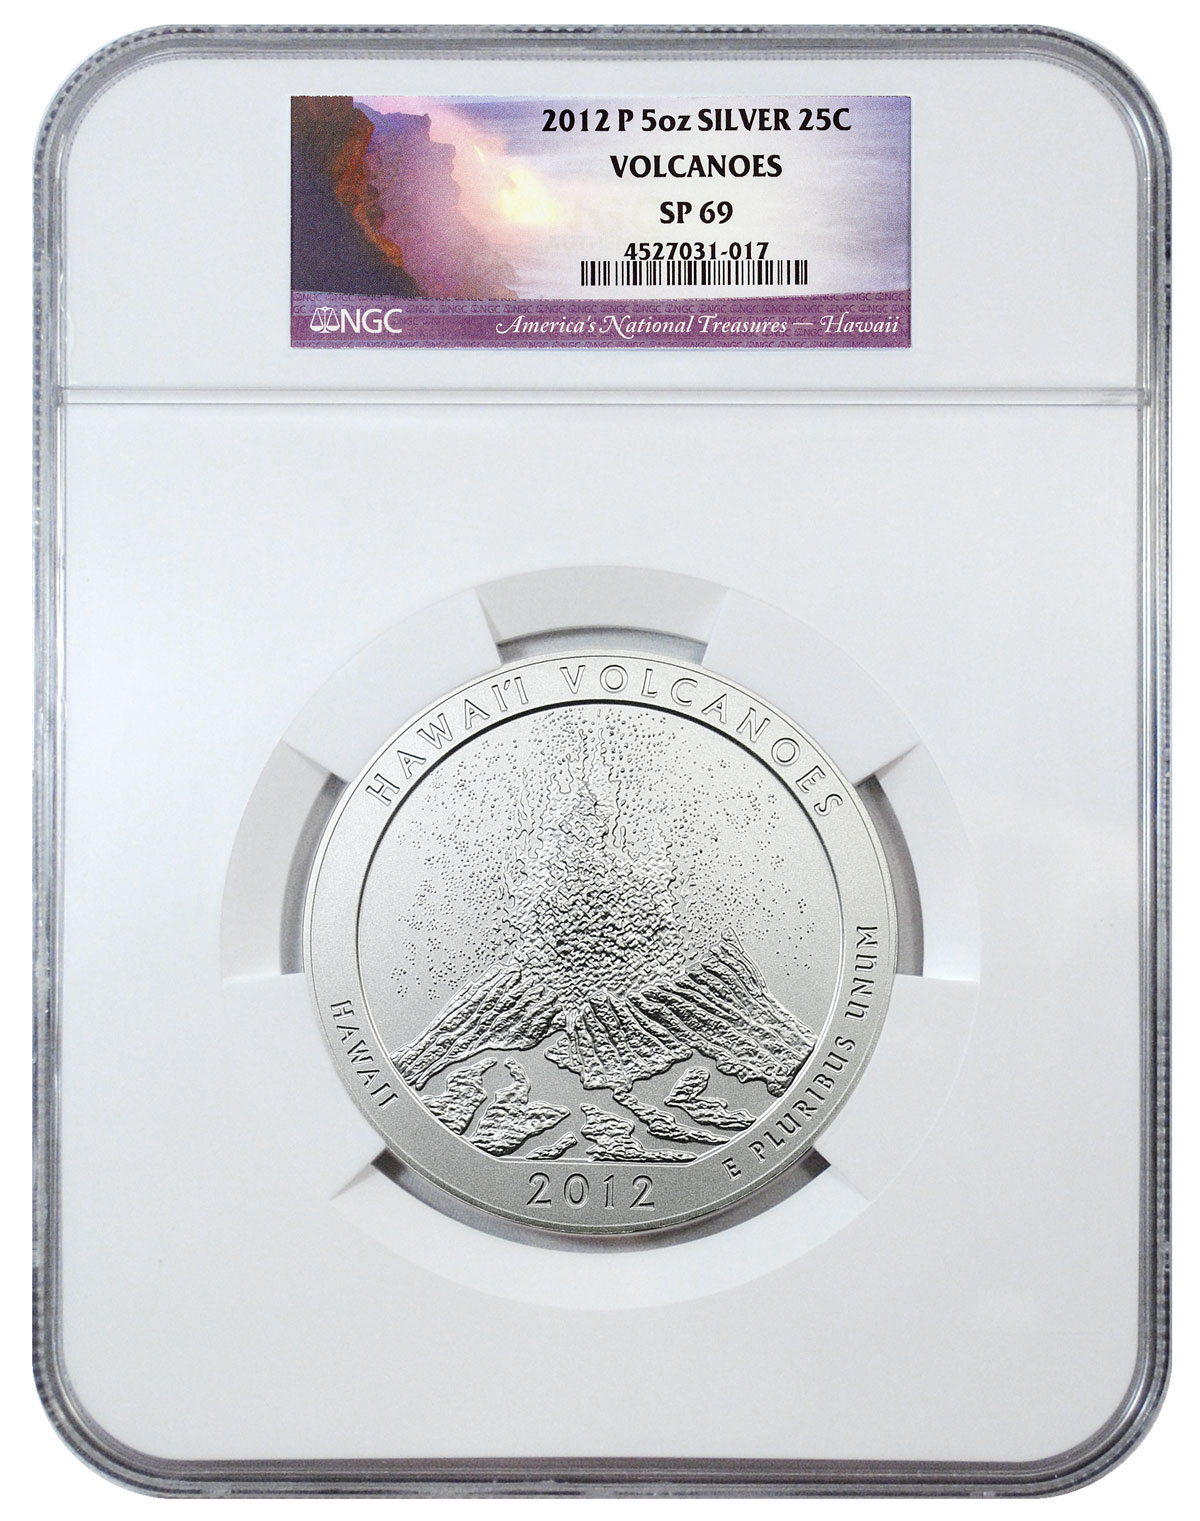 2012-P Hawaii Volcanoes 5 oz. Silver America the Beautiful Specimen Coin NGC SP69